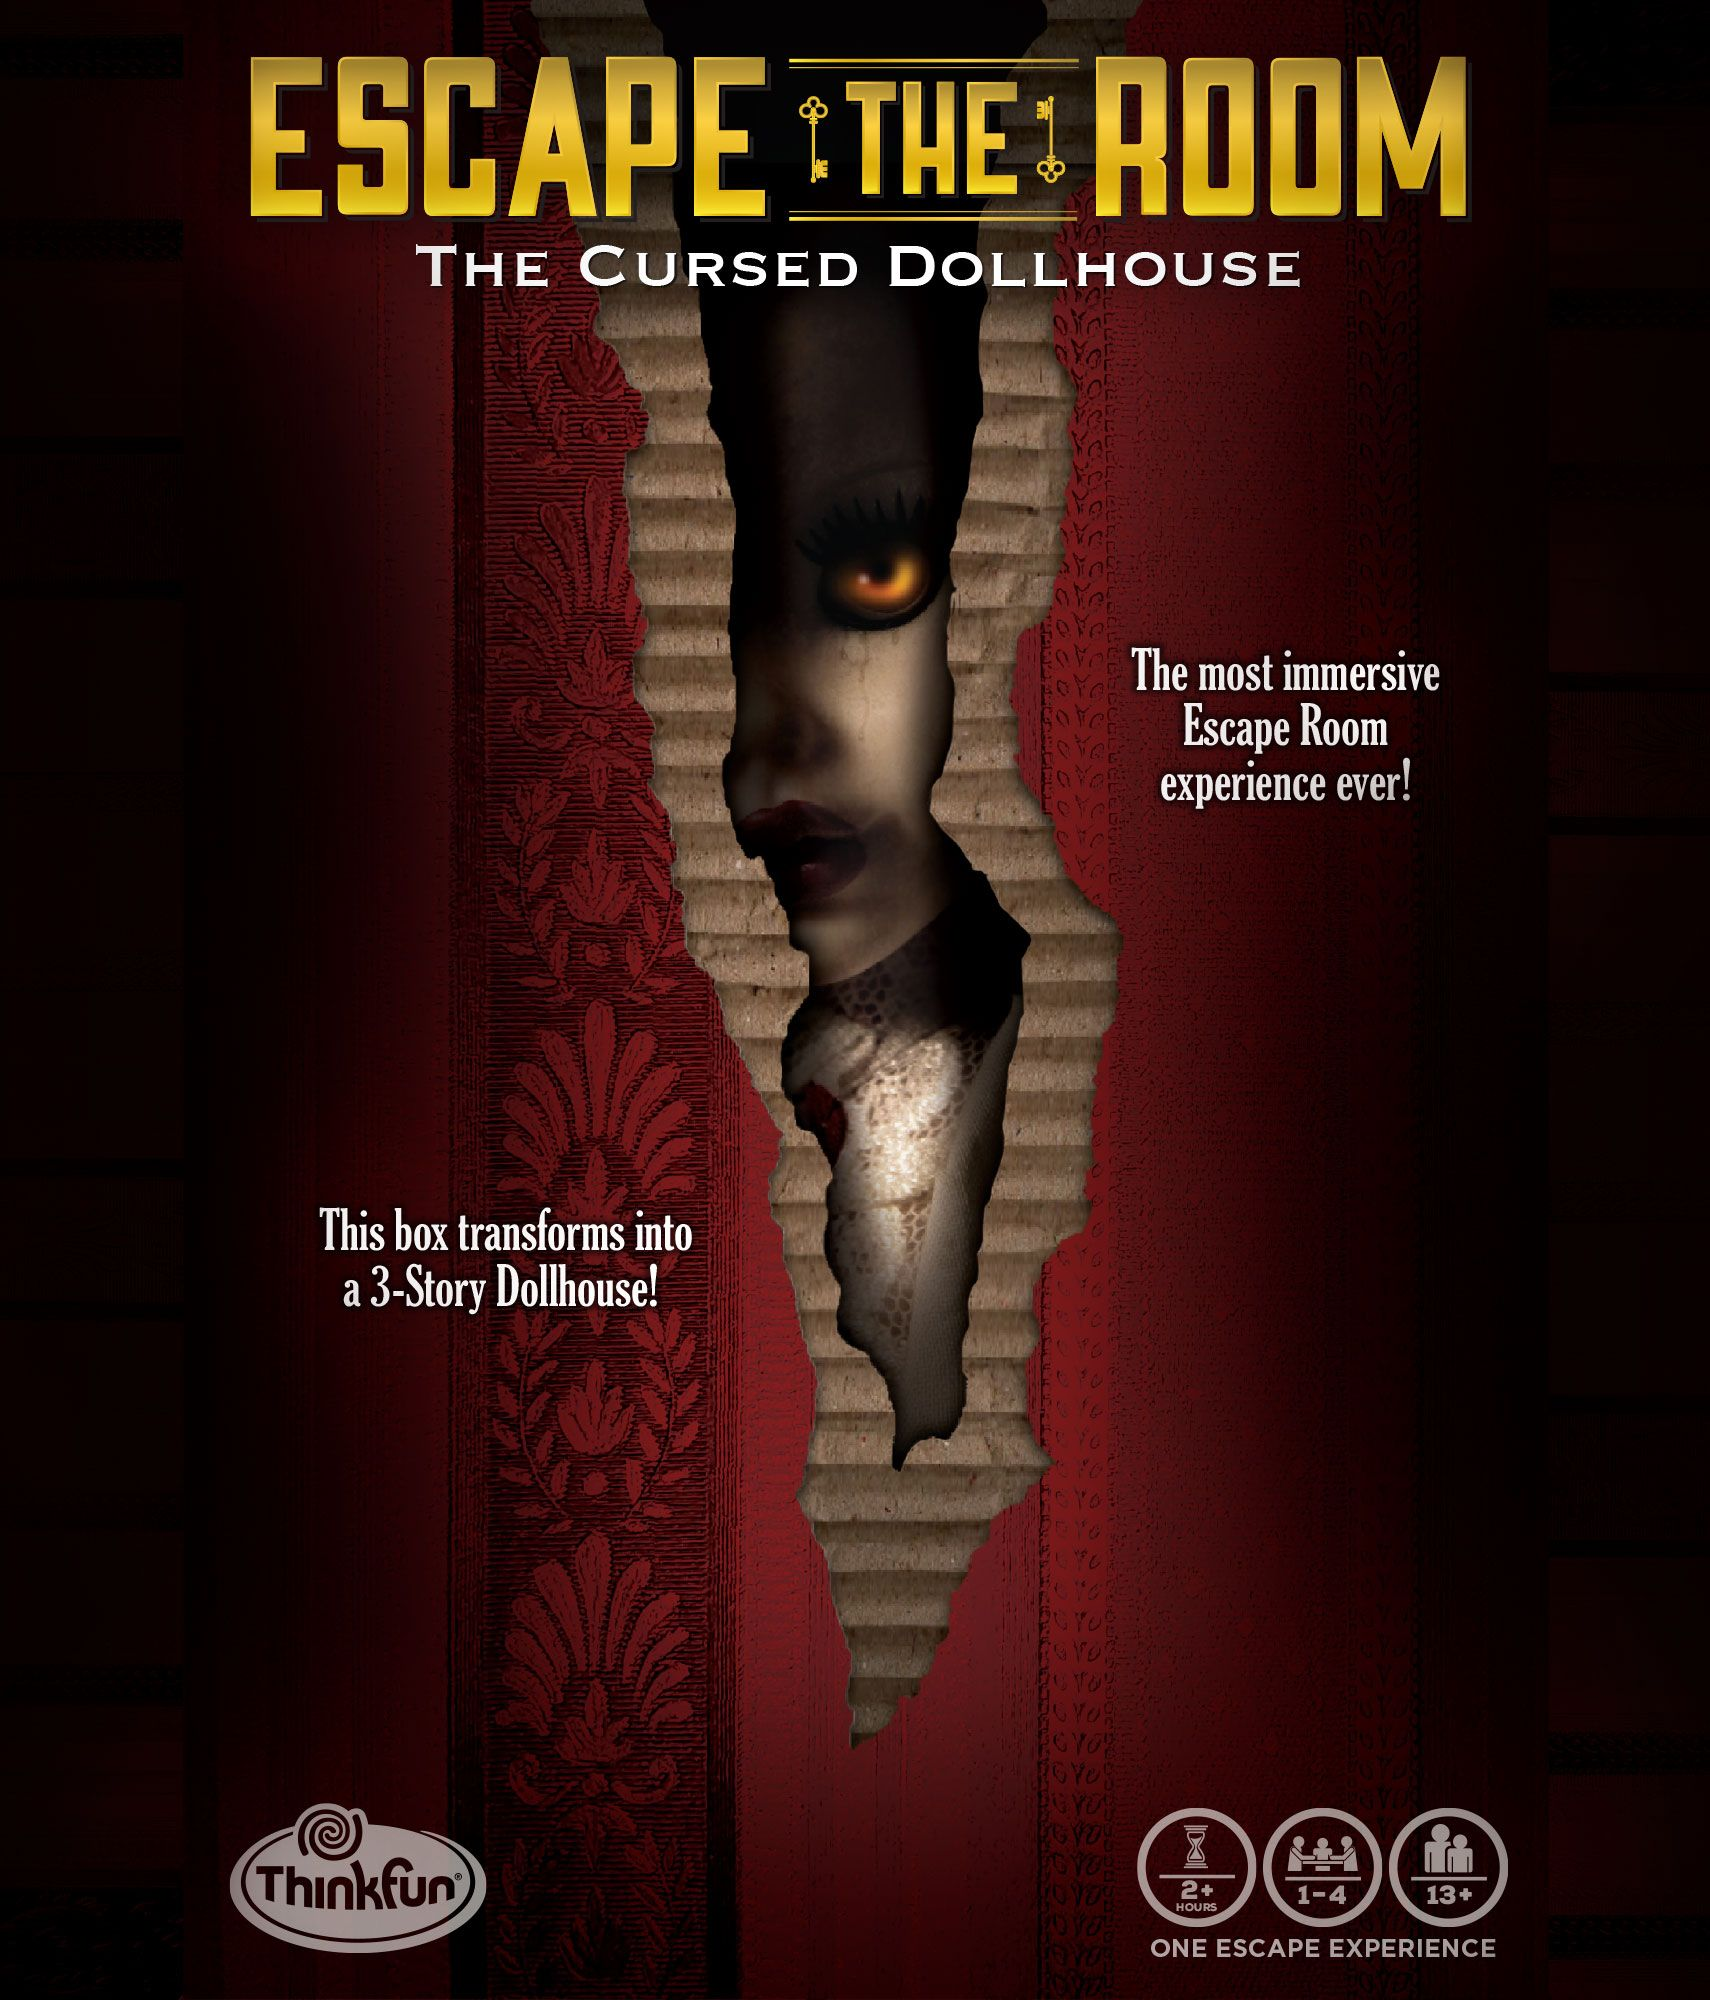 Escape the Room: The Cursed Dollhouse board game